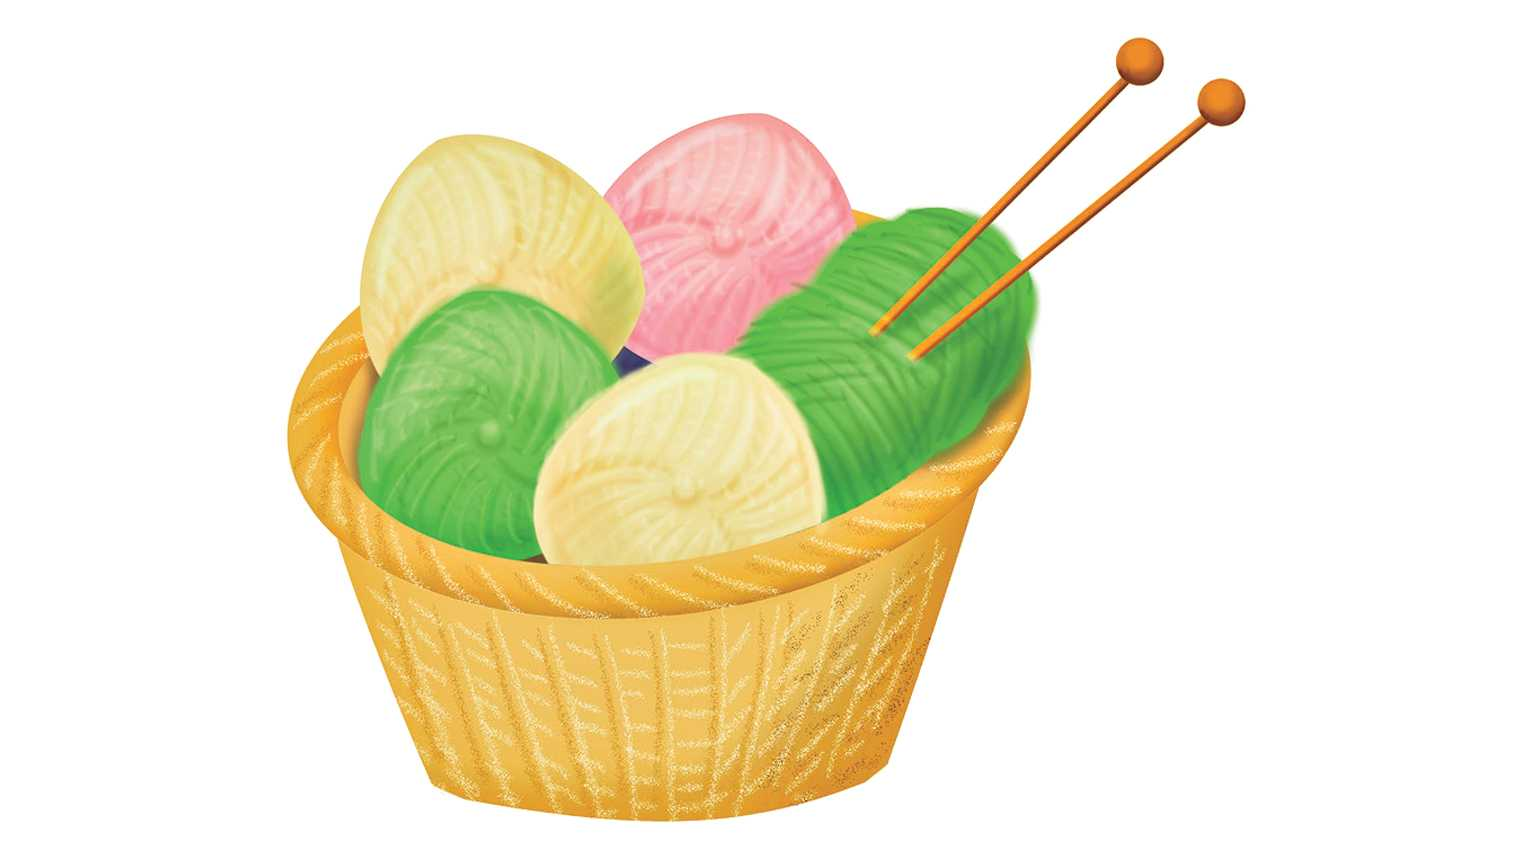 A basket of colorful yarn.